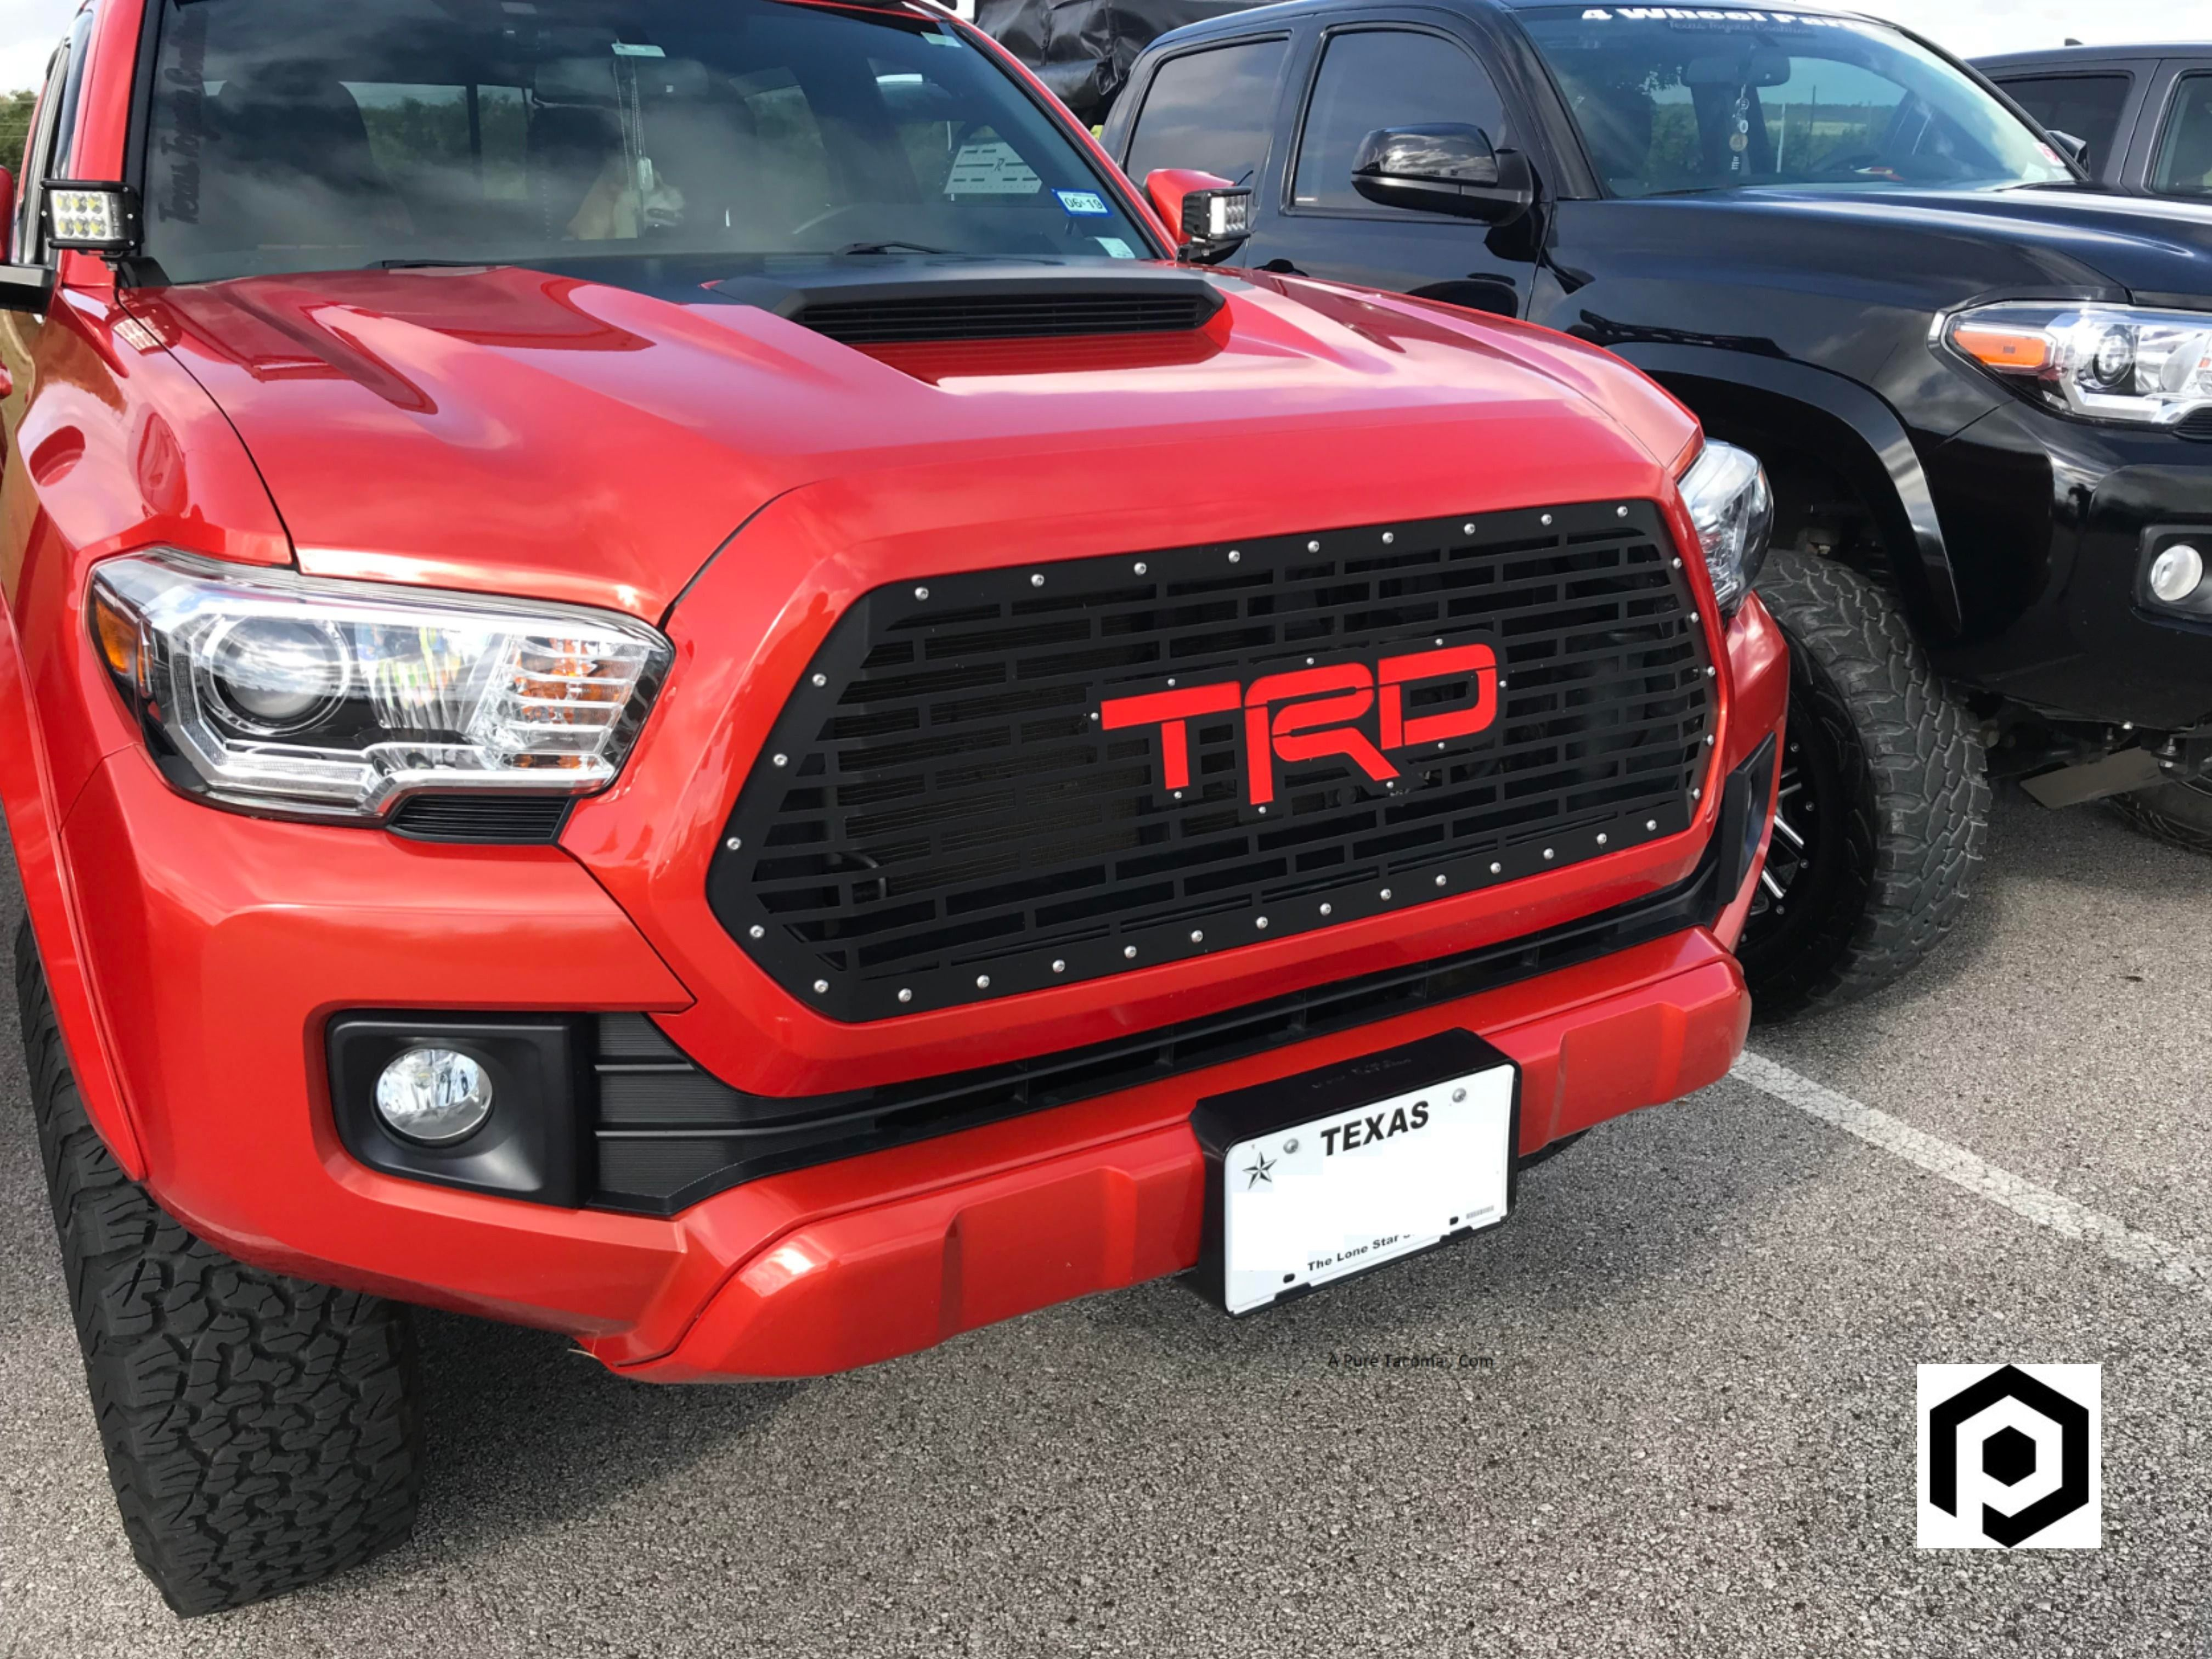 Toyota Tacoma Grilles Inserts In 2020 Tacoma Accessories Toyota Tacoma Accessories Toyota Tacoma